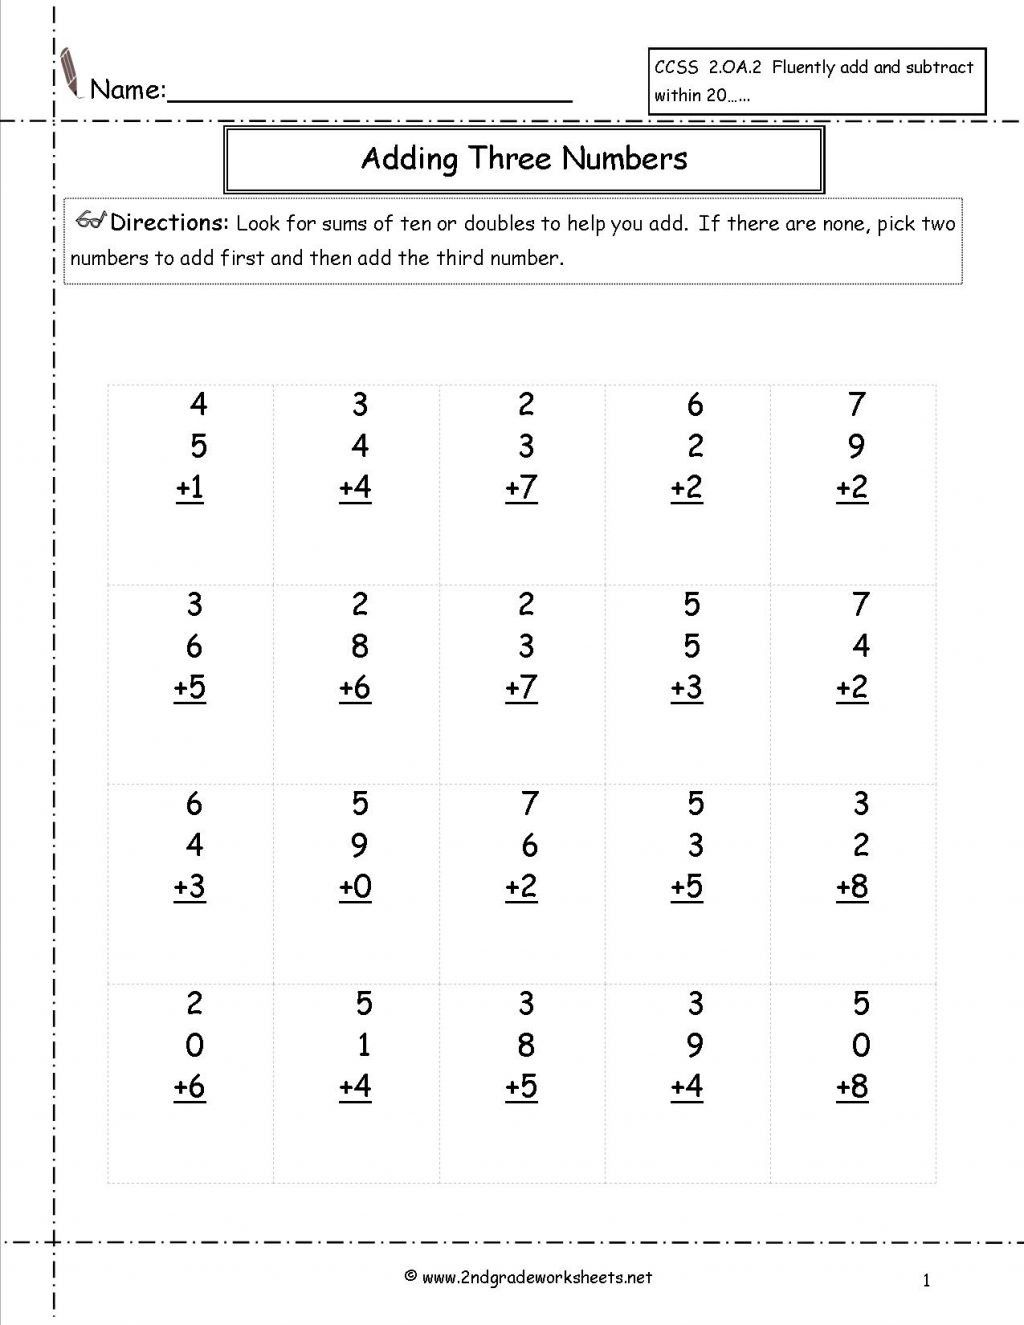 3 Identity Property Of Addition Worksheets 3rd Grade In